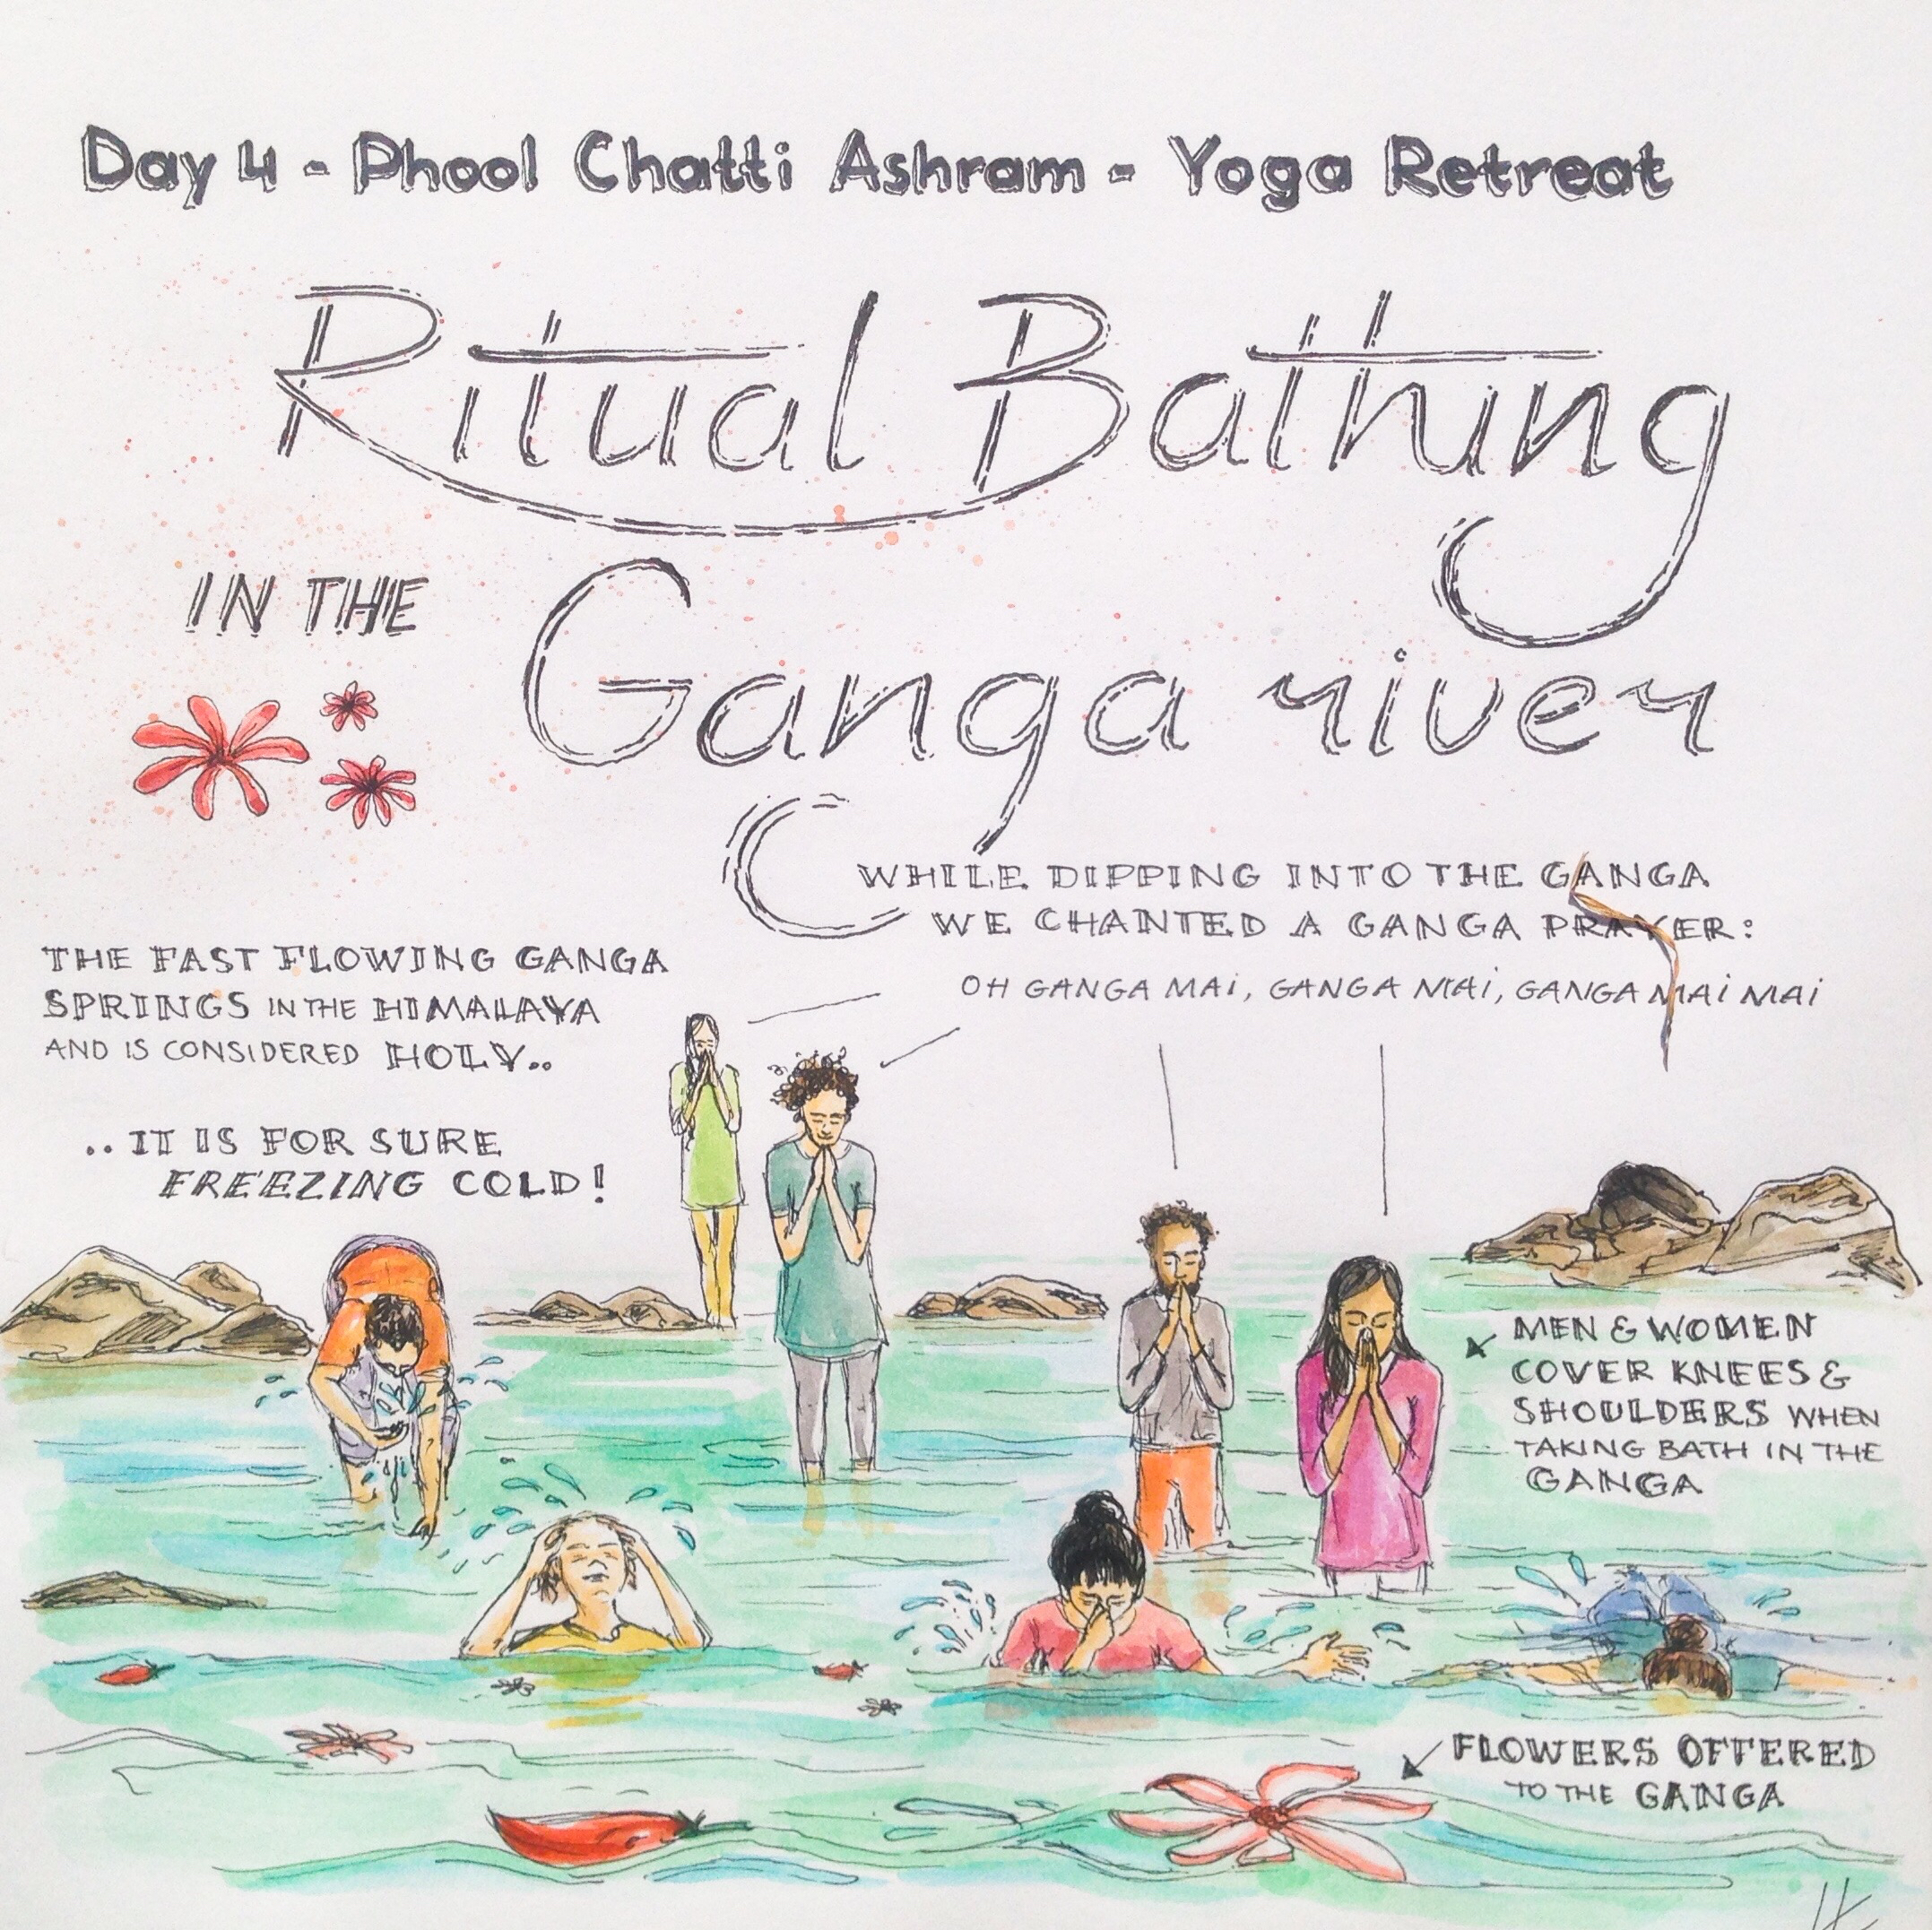 Phool Chatti Ashram Yoga Meditation India Ganga River Rishikesh